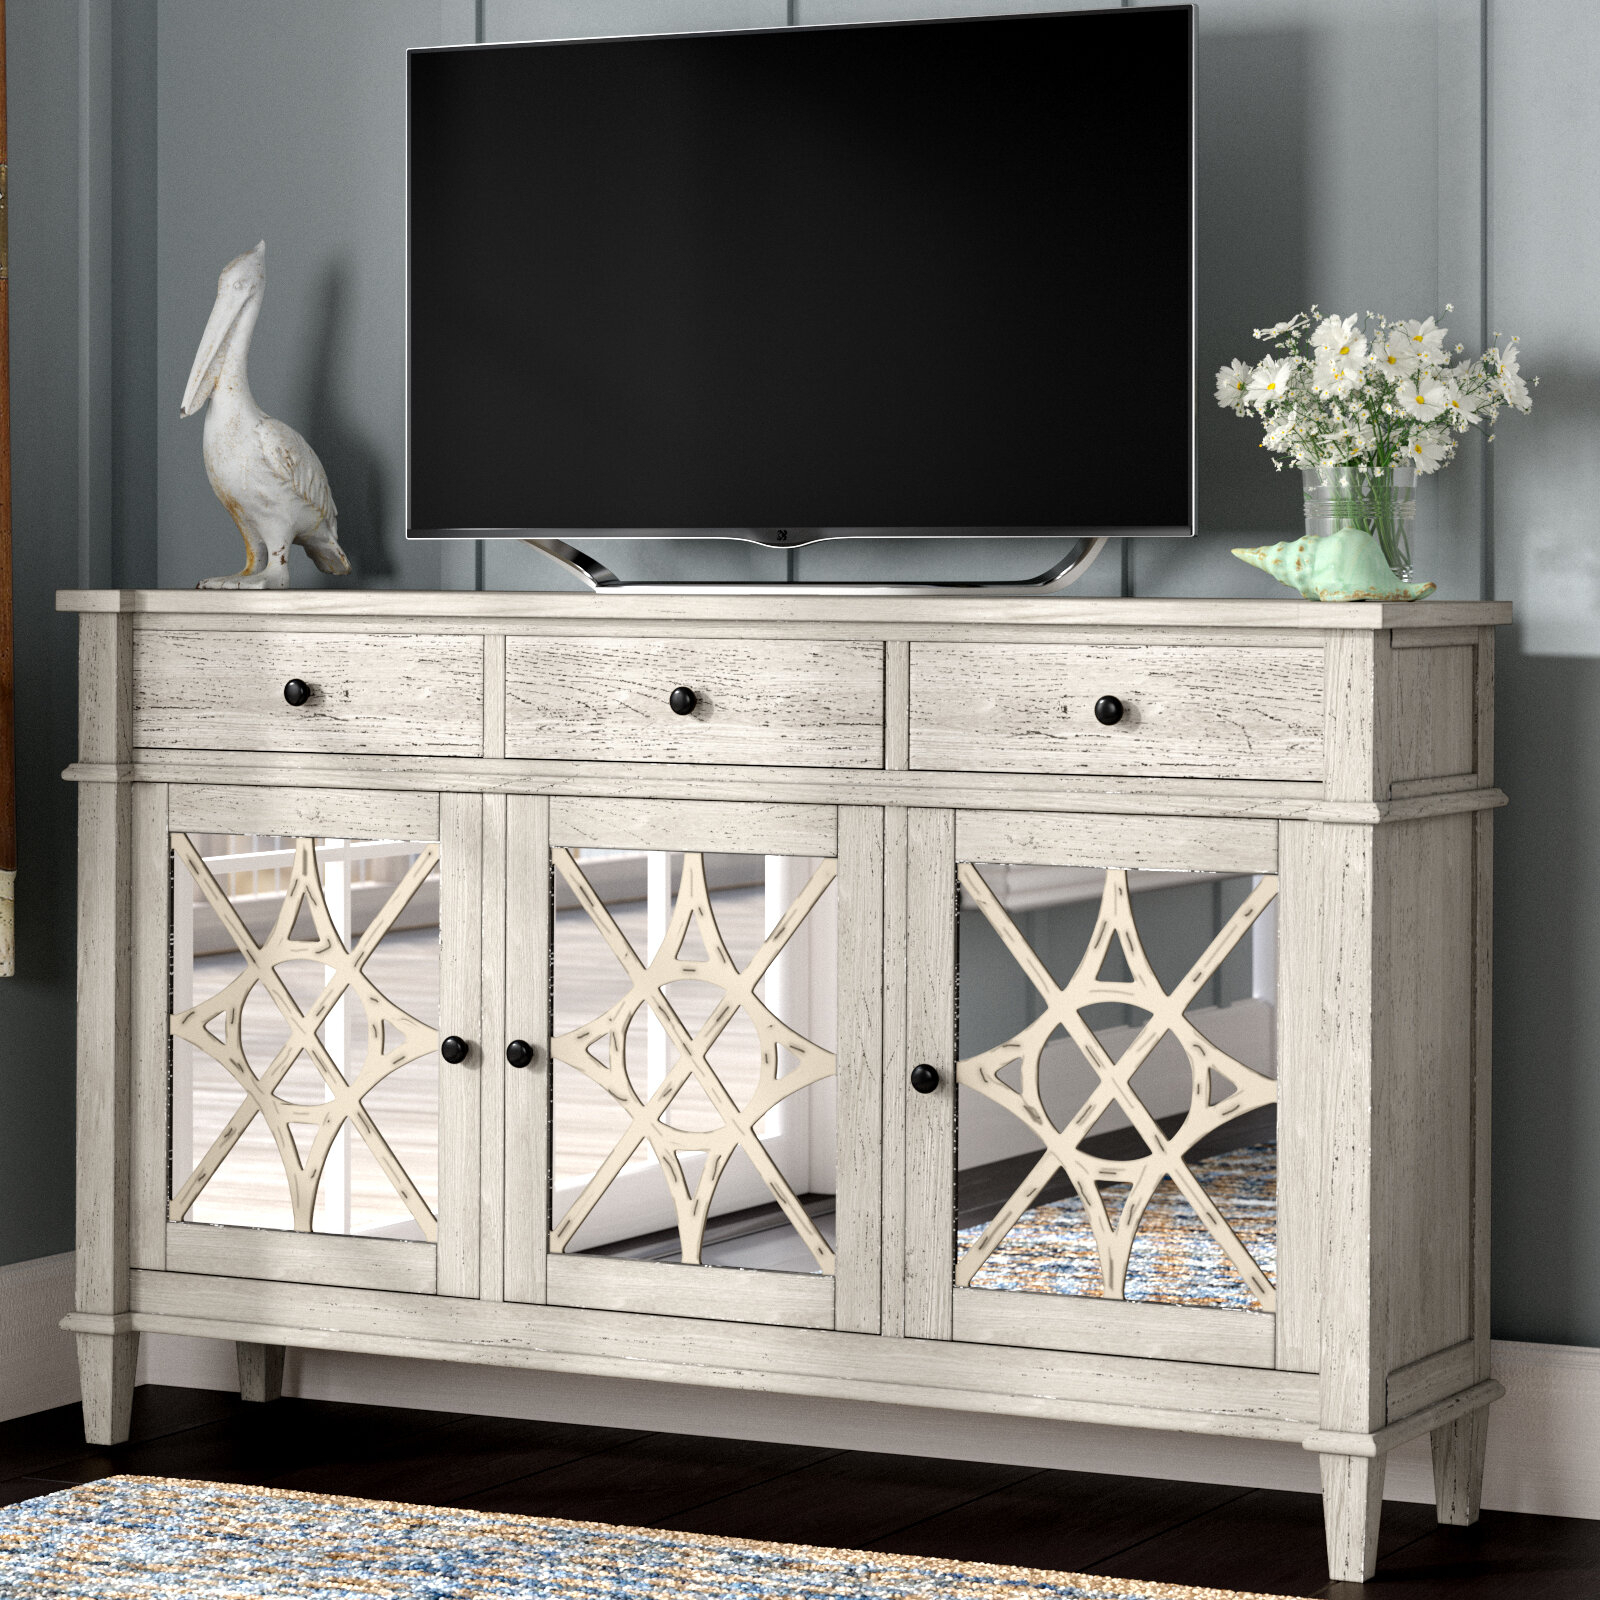 """Parmelee Tv Stand For Tvs Up To 65"""" Pertaining To Parmelee Tv Stands For Tvs Up To 65"""" (View 2 of 30)"""